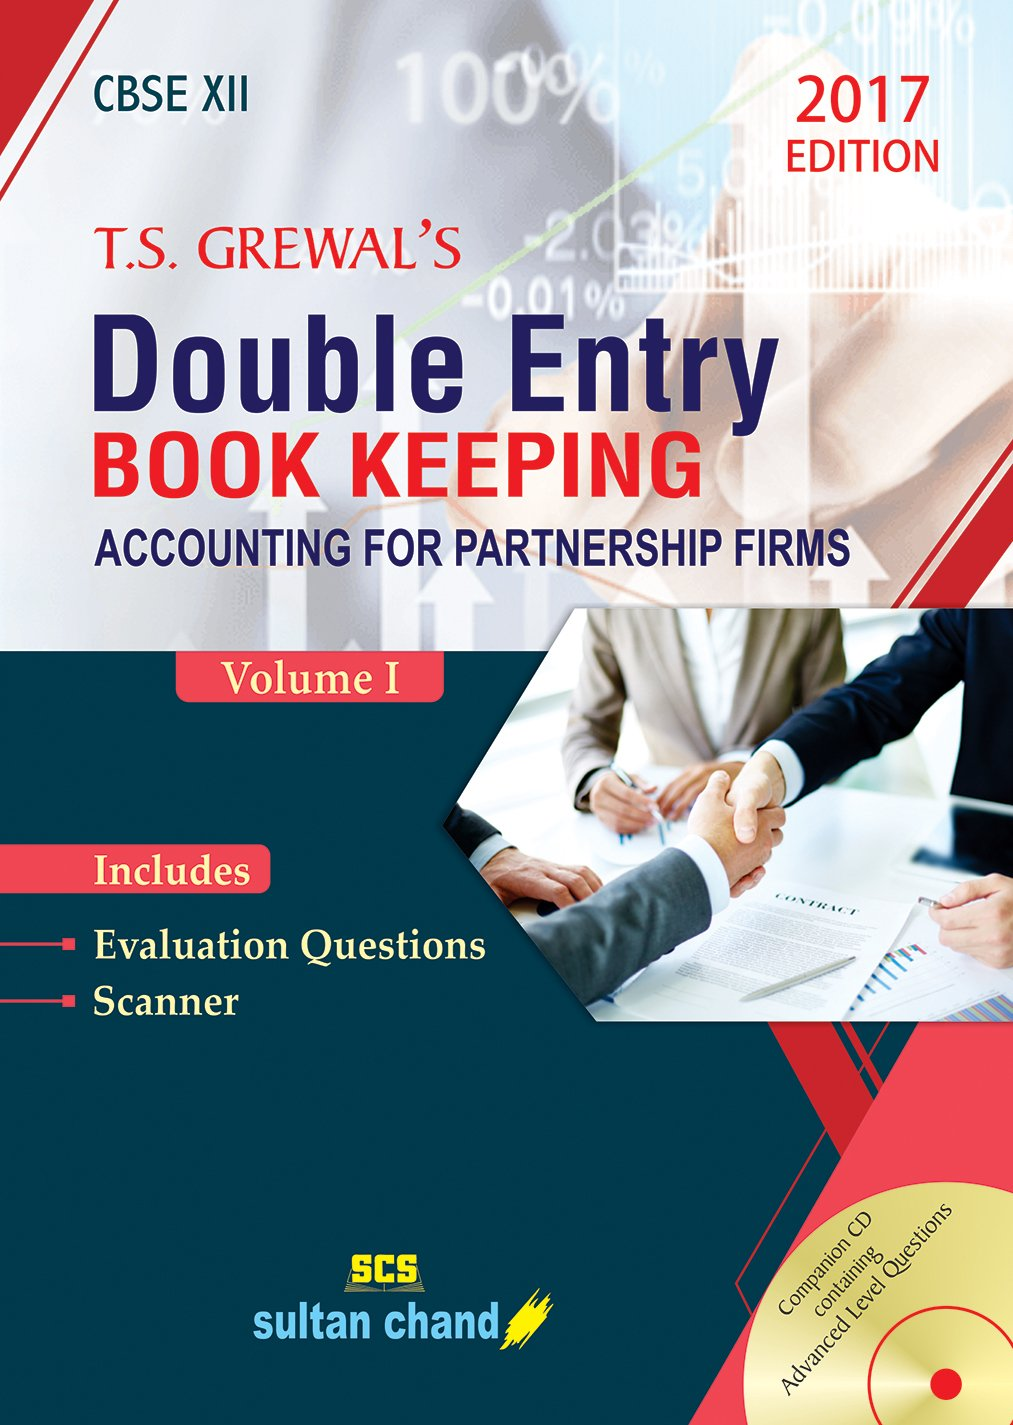 T.S. Grewal's Double Entry Book Keeping - CBSE XII Vol. 1: Accounting for  Partnership Firms Old Edition: Amazon.in: T.S. Grewal, H.S. Grewal, G.S.  Grewal, ...